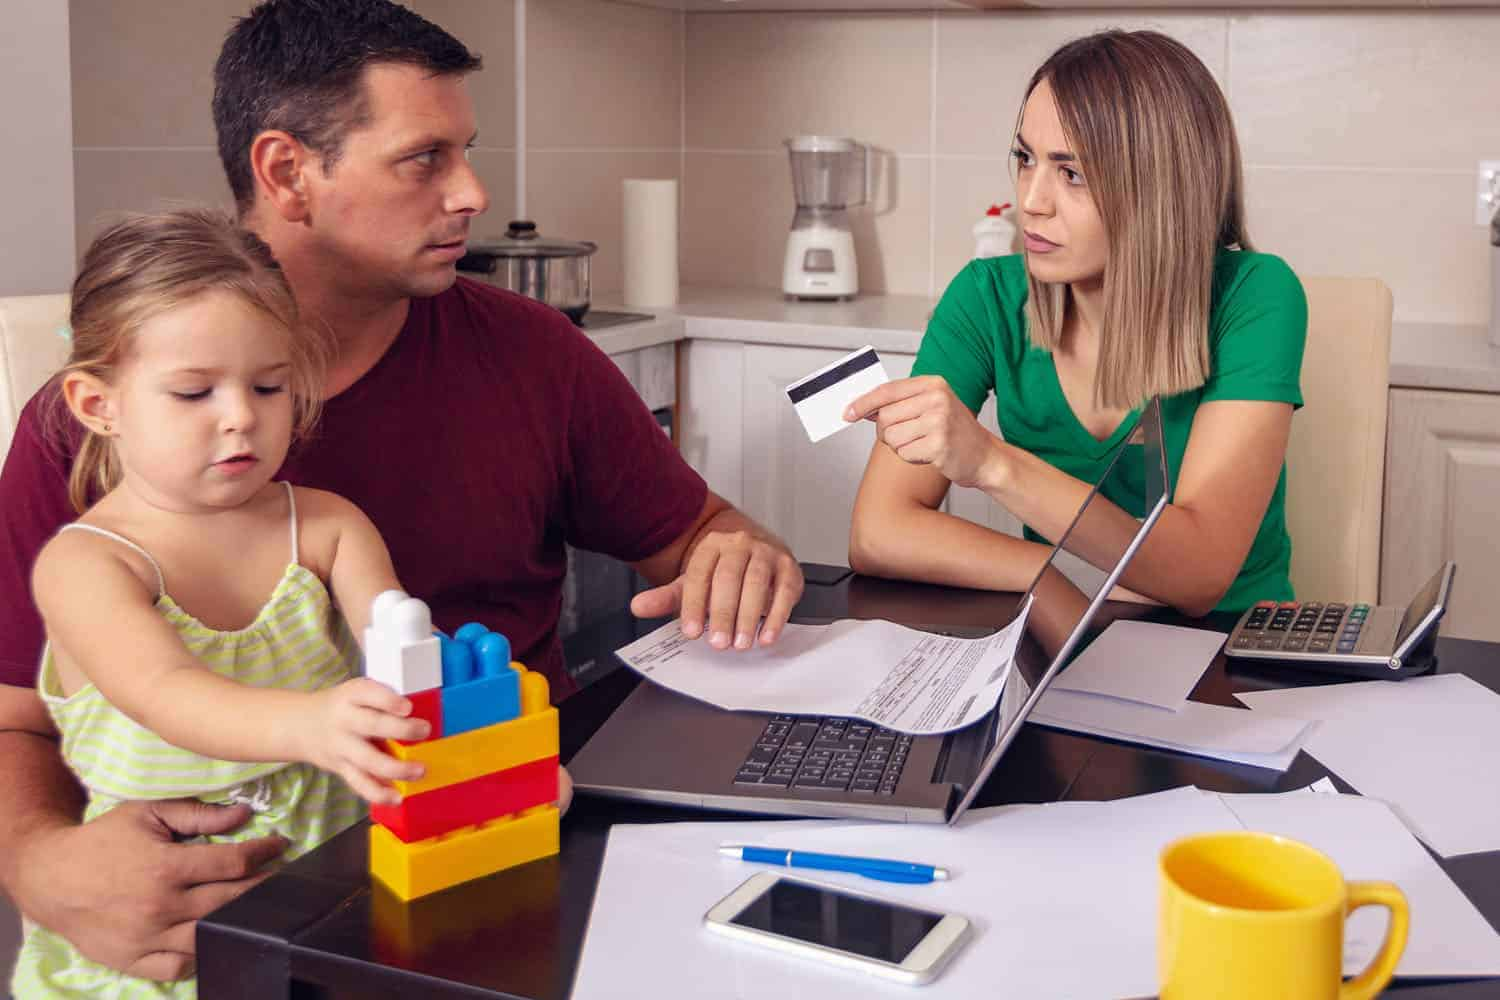 Parents or Early Childhood Teachers with money worries NZ.